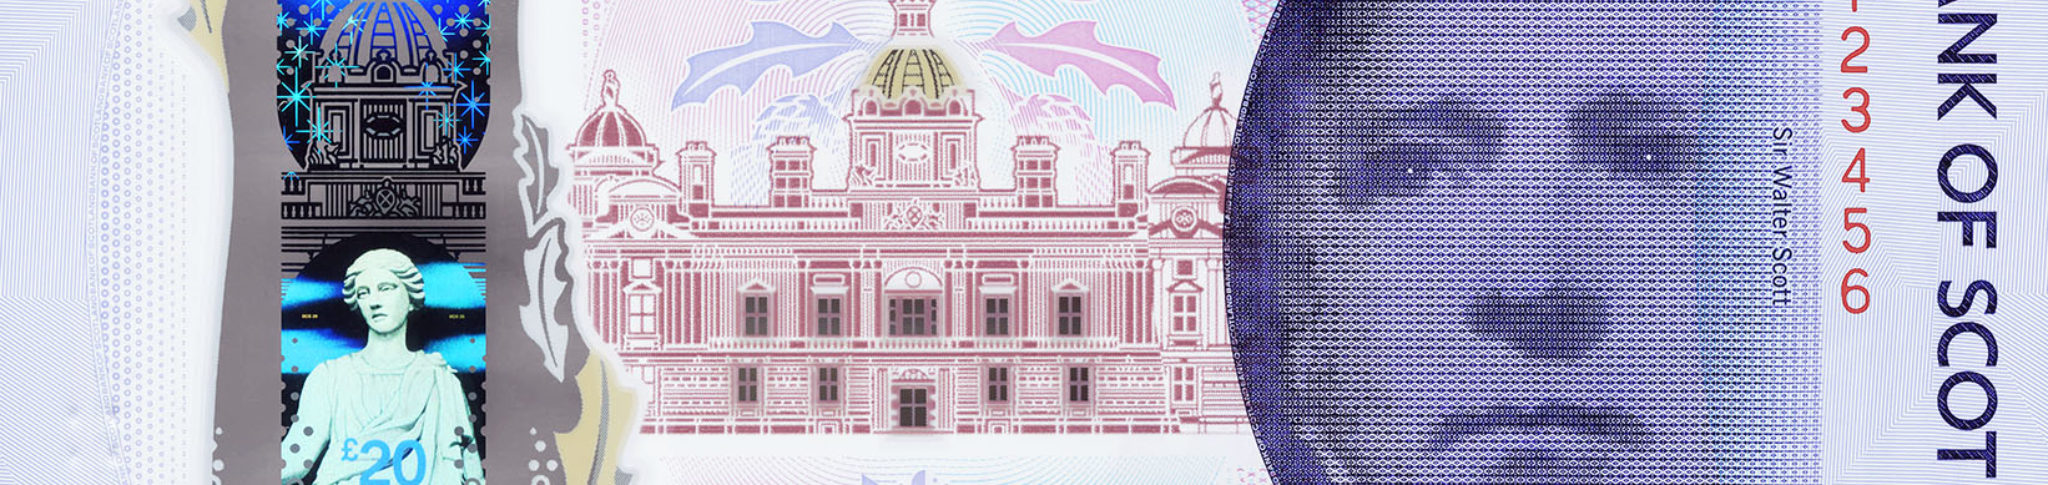 Bank of Scotland 20 front